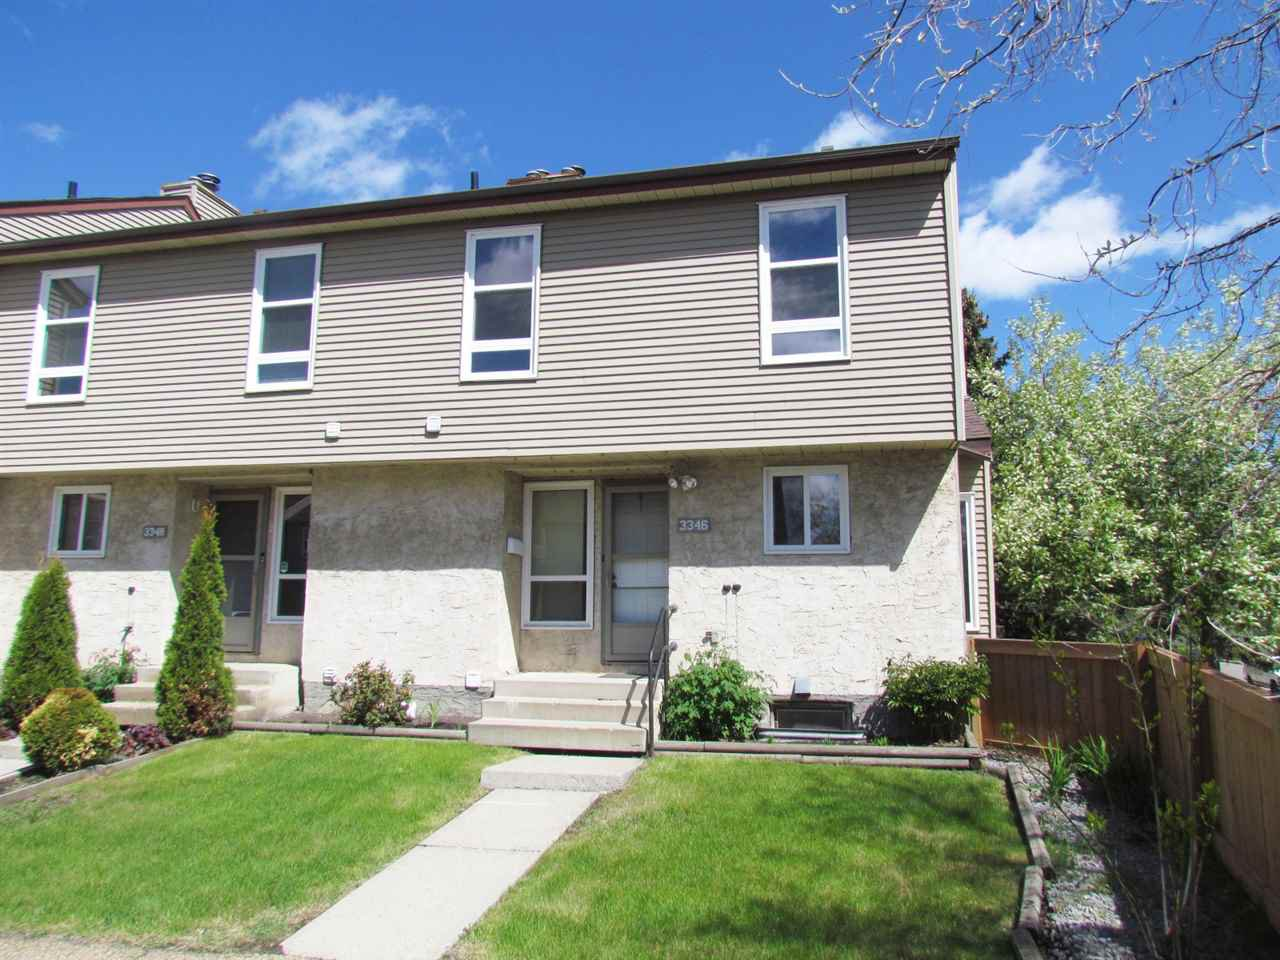 Main Photo: 3346 116A Avenue in Edmonton: Zone 23 Townhouse for sale : MLS®# E4198570